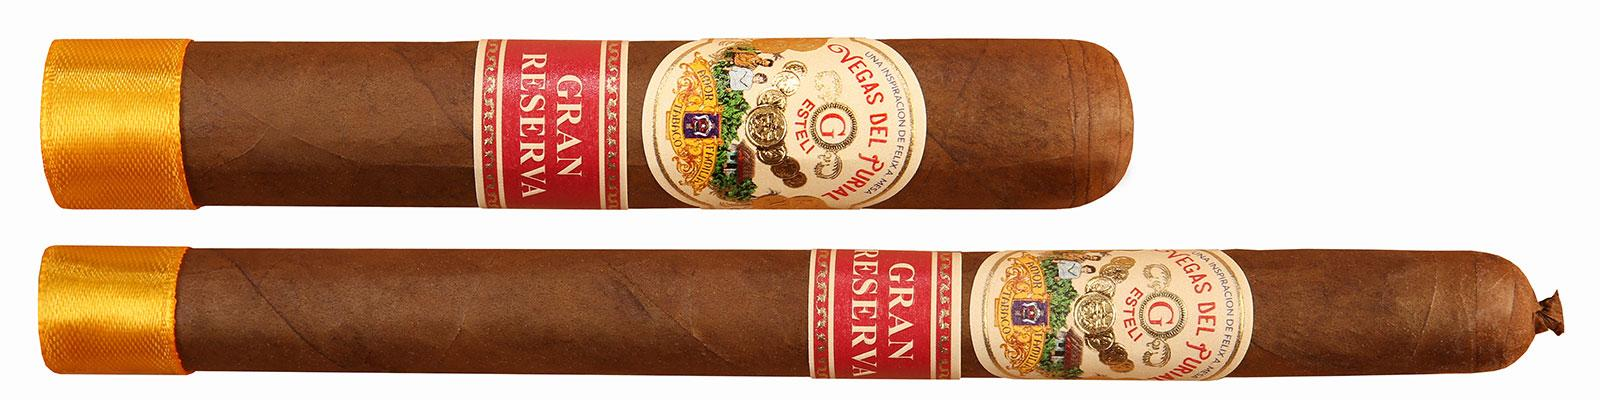 Vegas del Purial Gran Reserva's Robusto (top), measuring 5 inches by 50 ring gauge, and Lancero (bottom), 7 by 38.